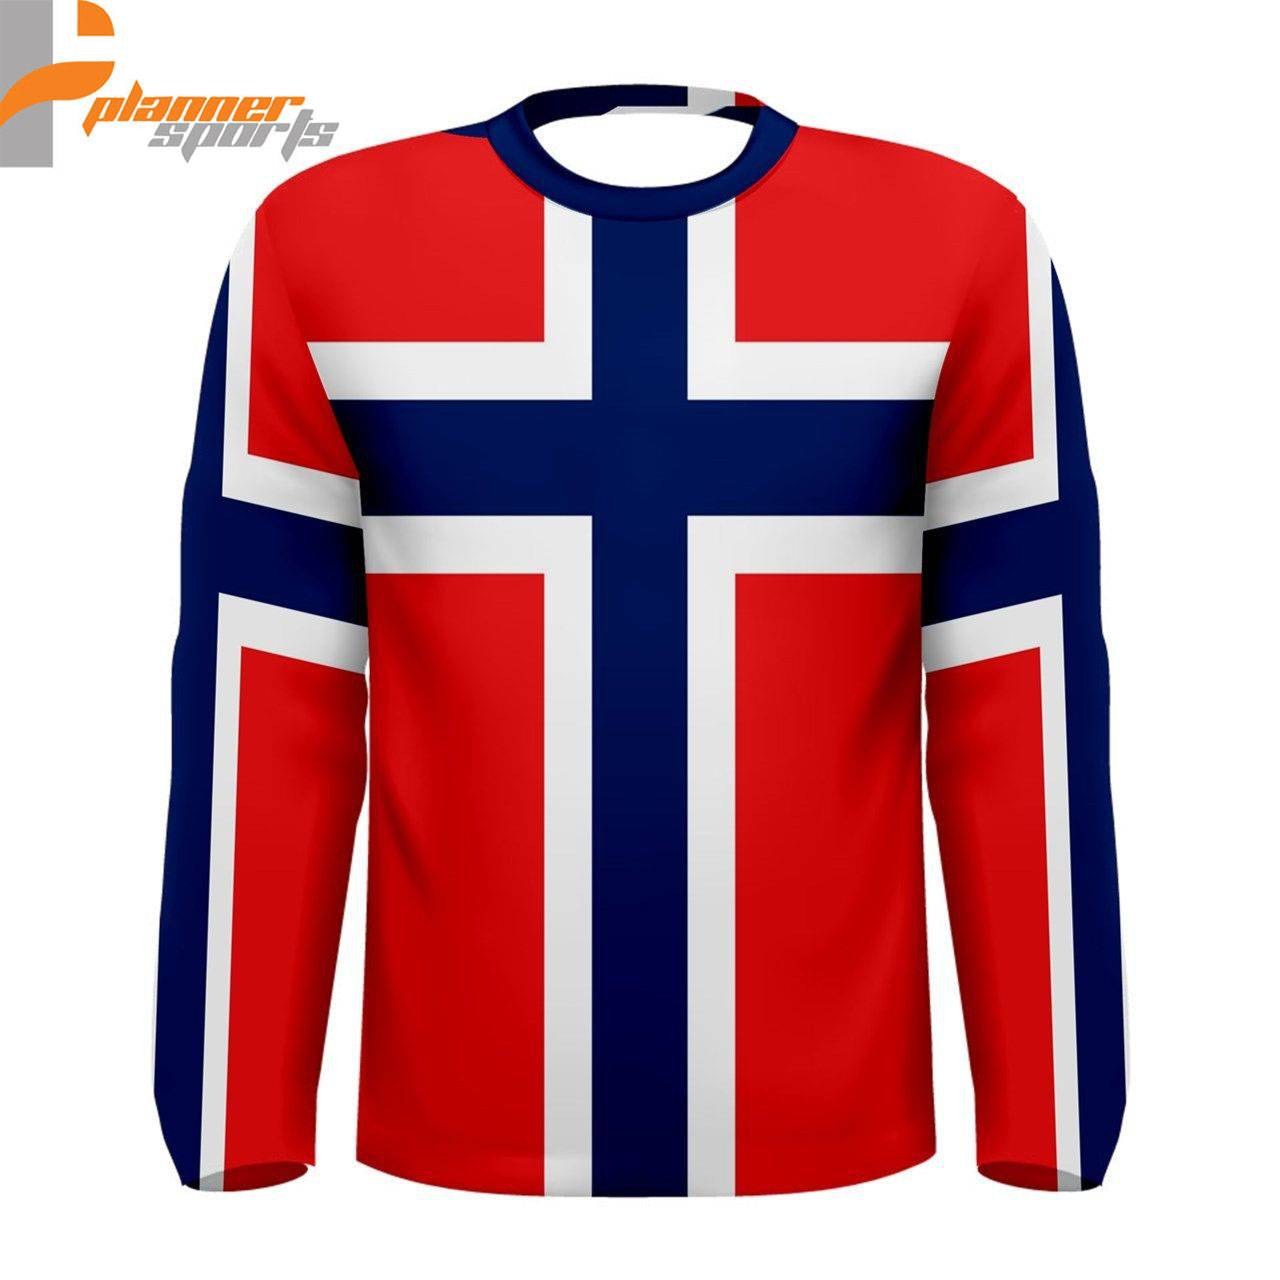 Norway Norwegian Flag Sublimated Men's Long Sleeve T-Shirt S,M,L,XL,2XL,3XL